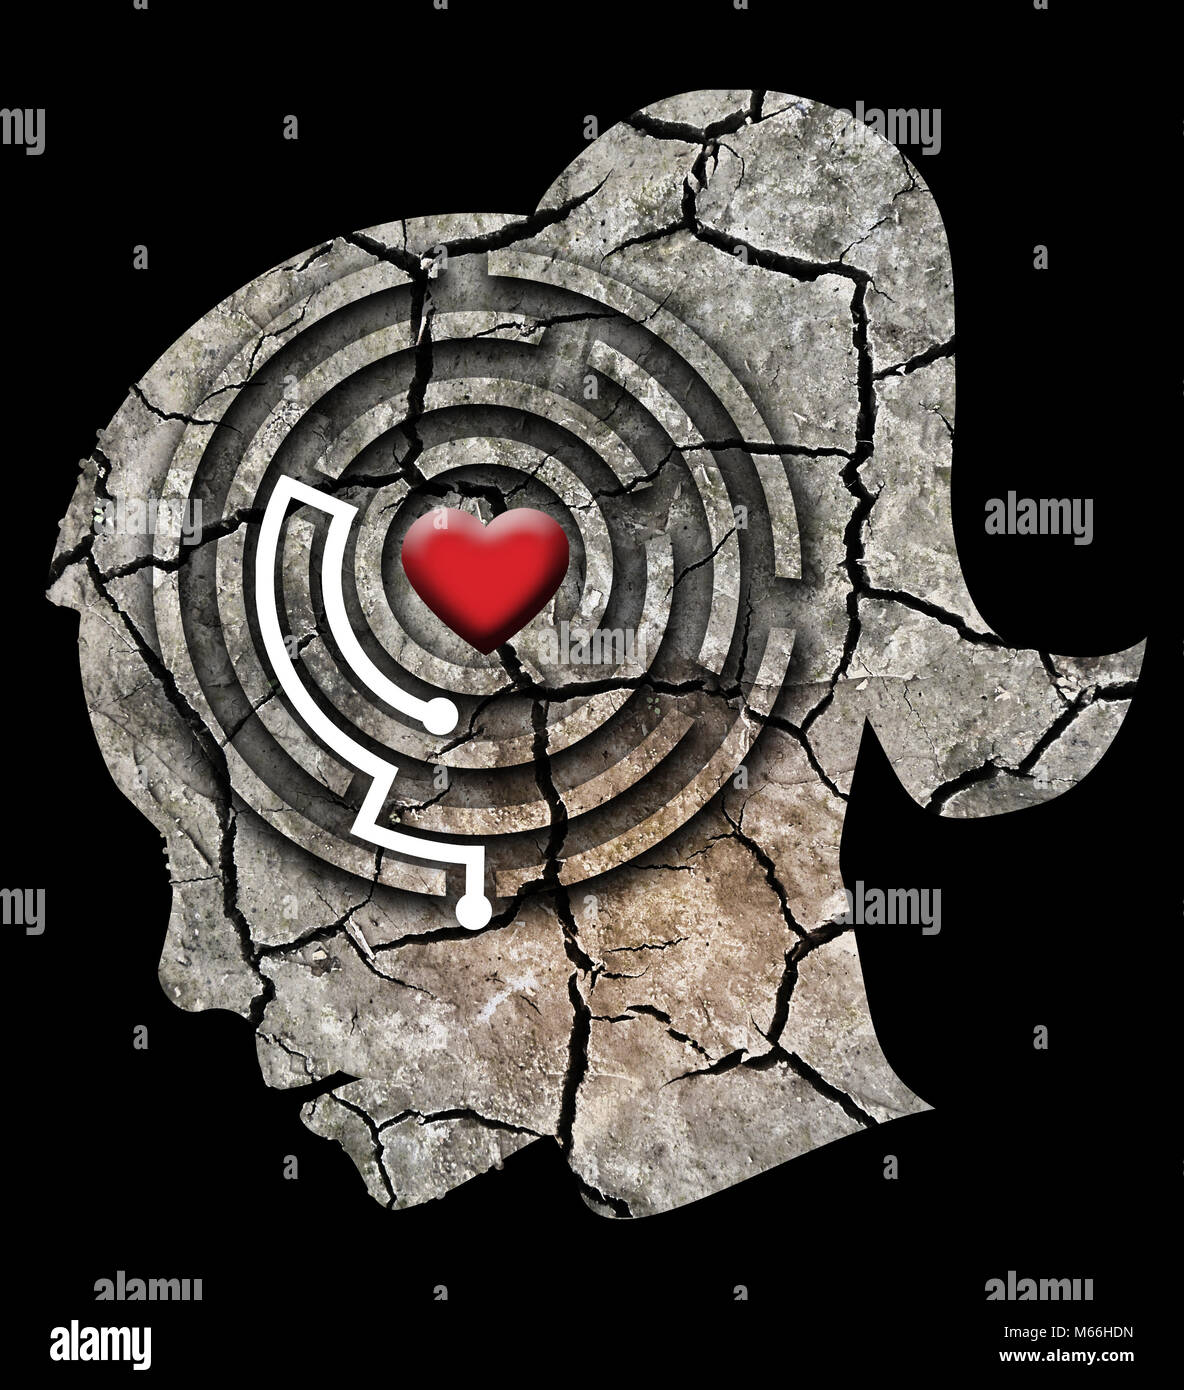 Love yourself concept. Stylized female head silhouette with a heart in a maze. Photo-montage with Dry cracked earth. - Stock Image